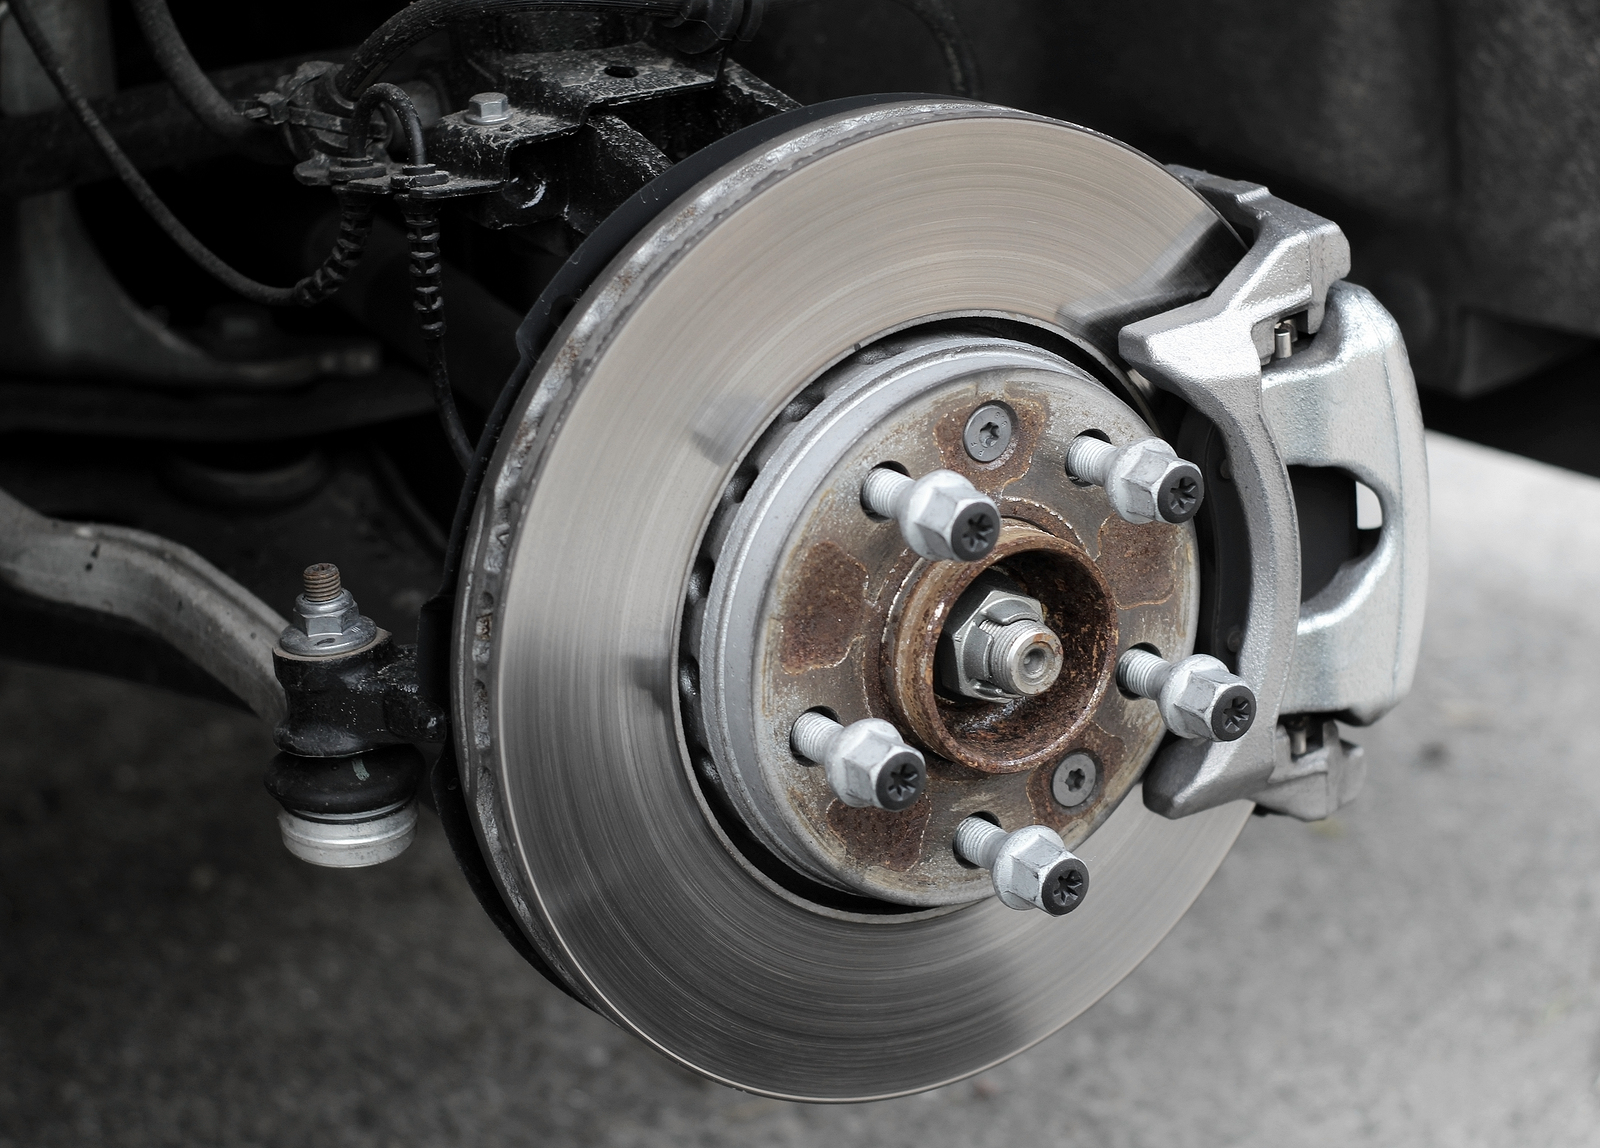 Car brake parts for sale near New Castle